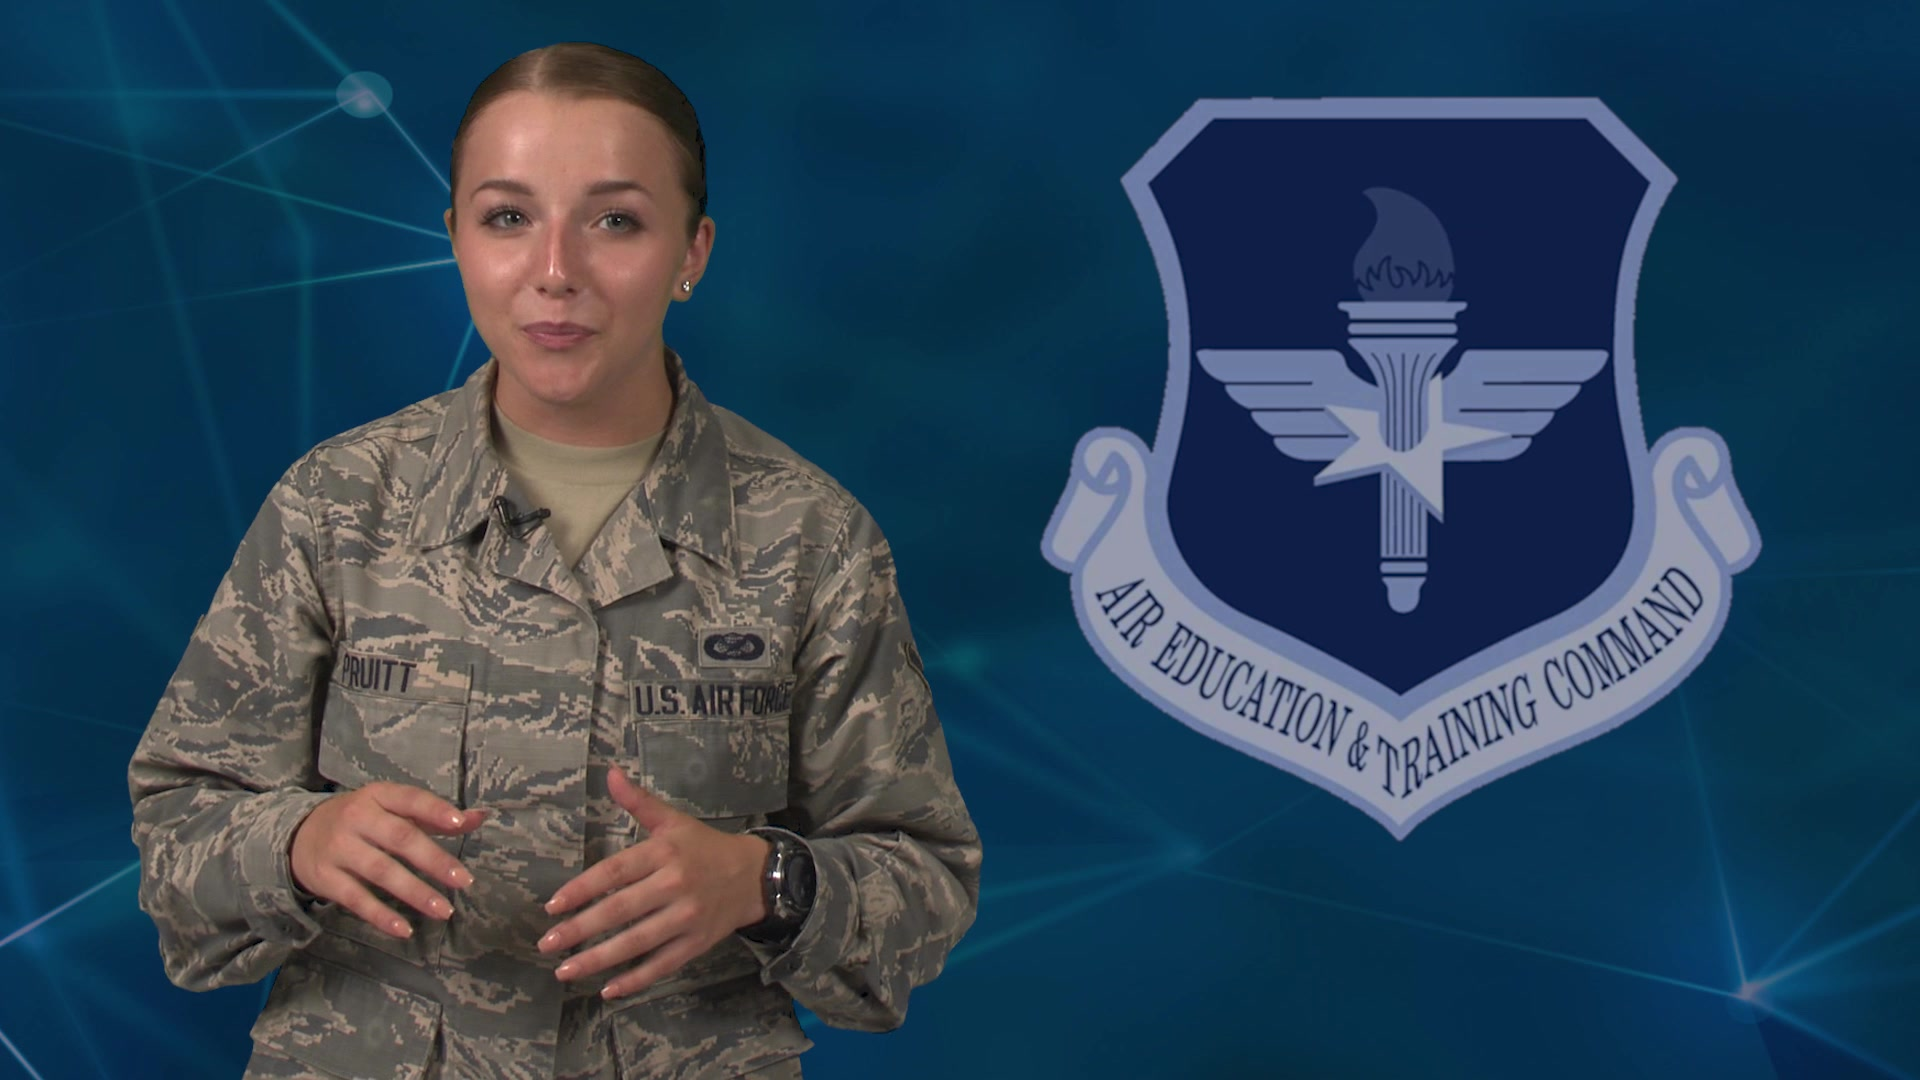 Air Education and Training Command is reimagining the way Airmen learn through the Continuum of Learning, a paradigm shift in education, training and the capitalization of experiences. 